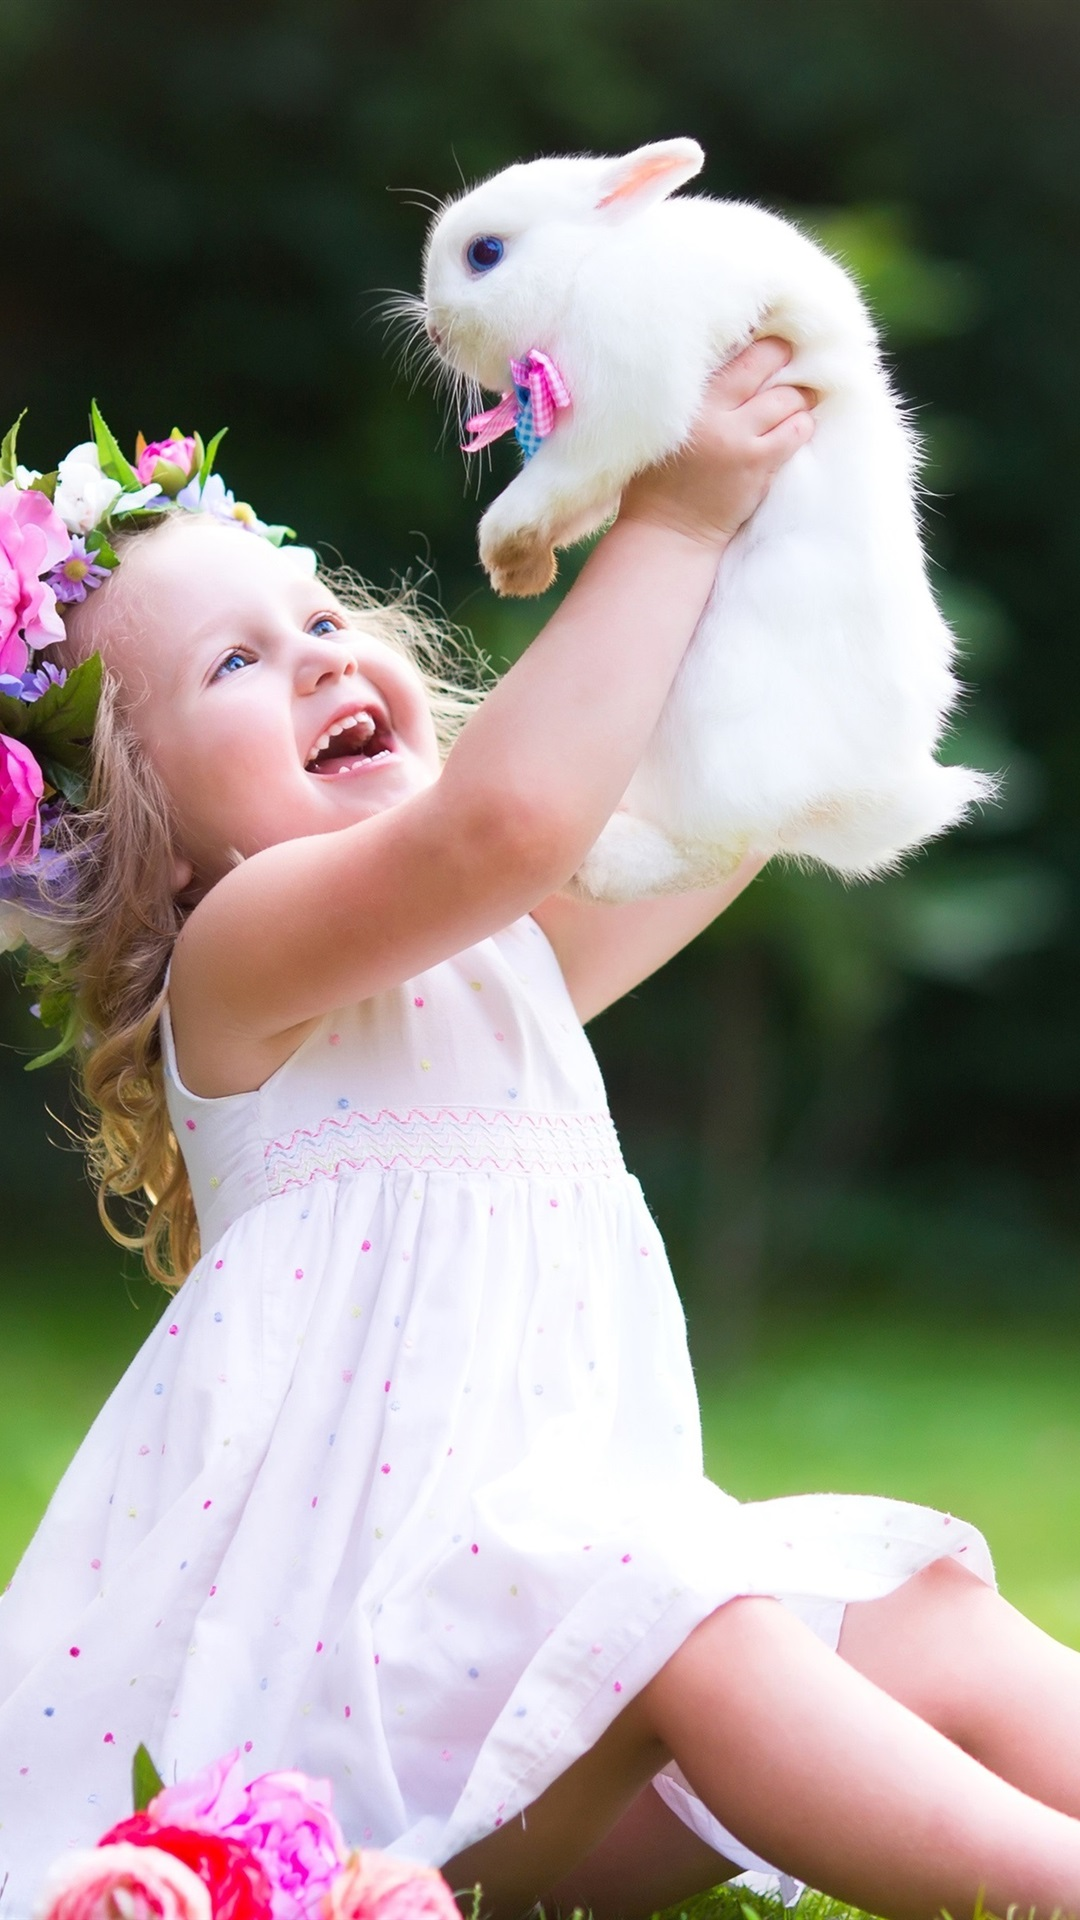 Happy Child Girl Play With White Rabbit 1080x1920 Iphone 8 7 6 6s Plus Wallpaper Background Picture Image